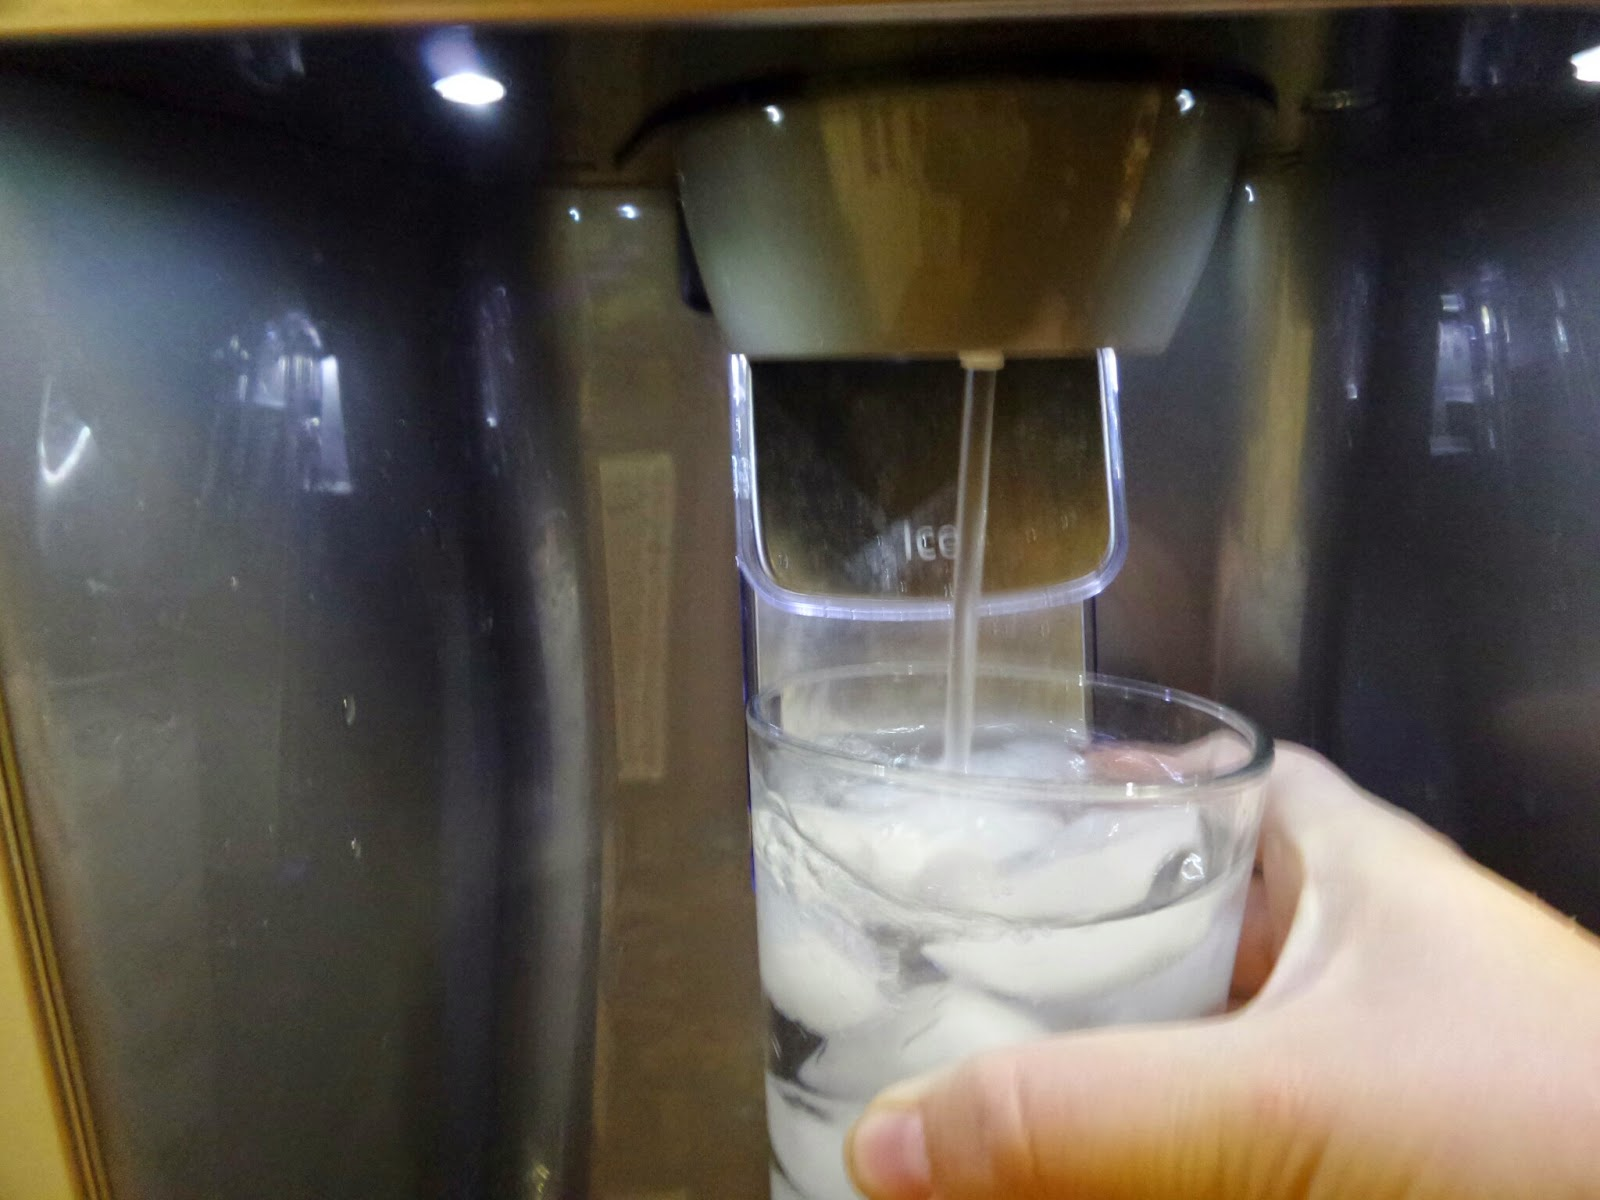 Iced Water For all!